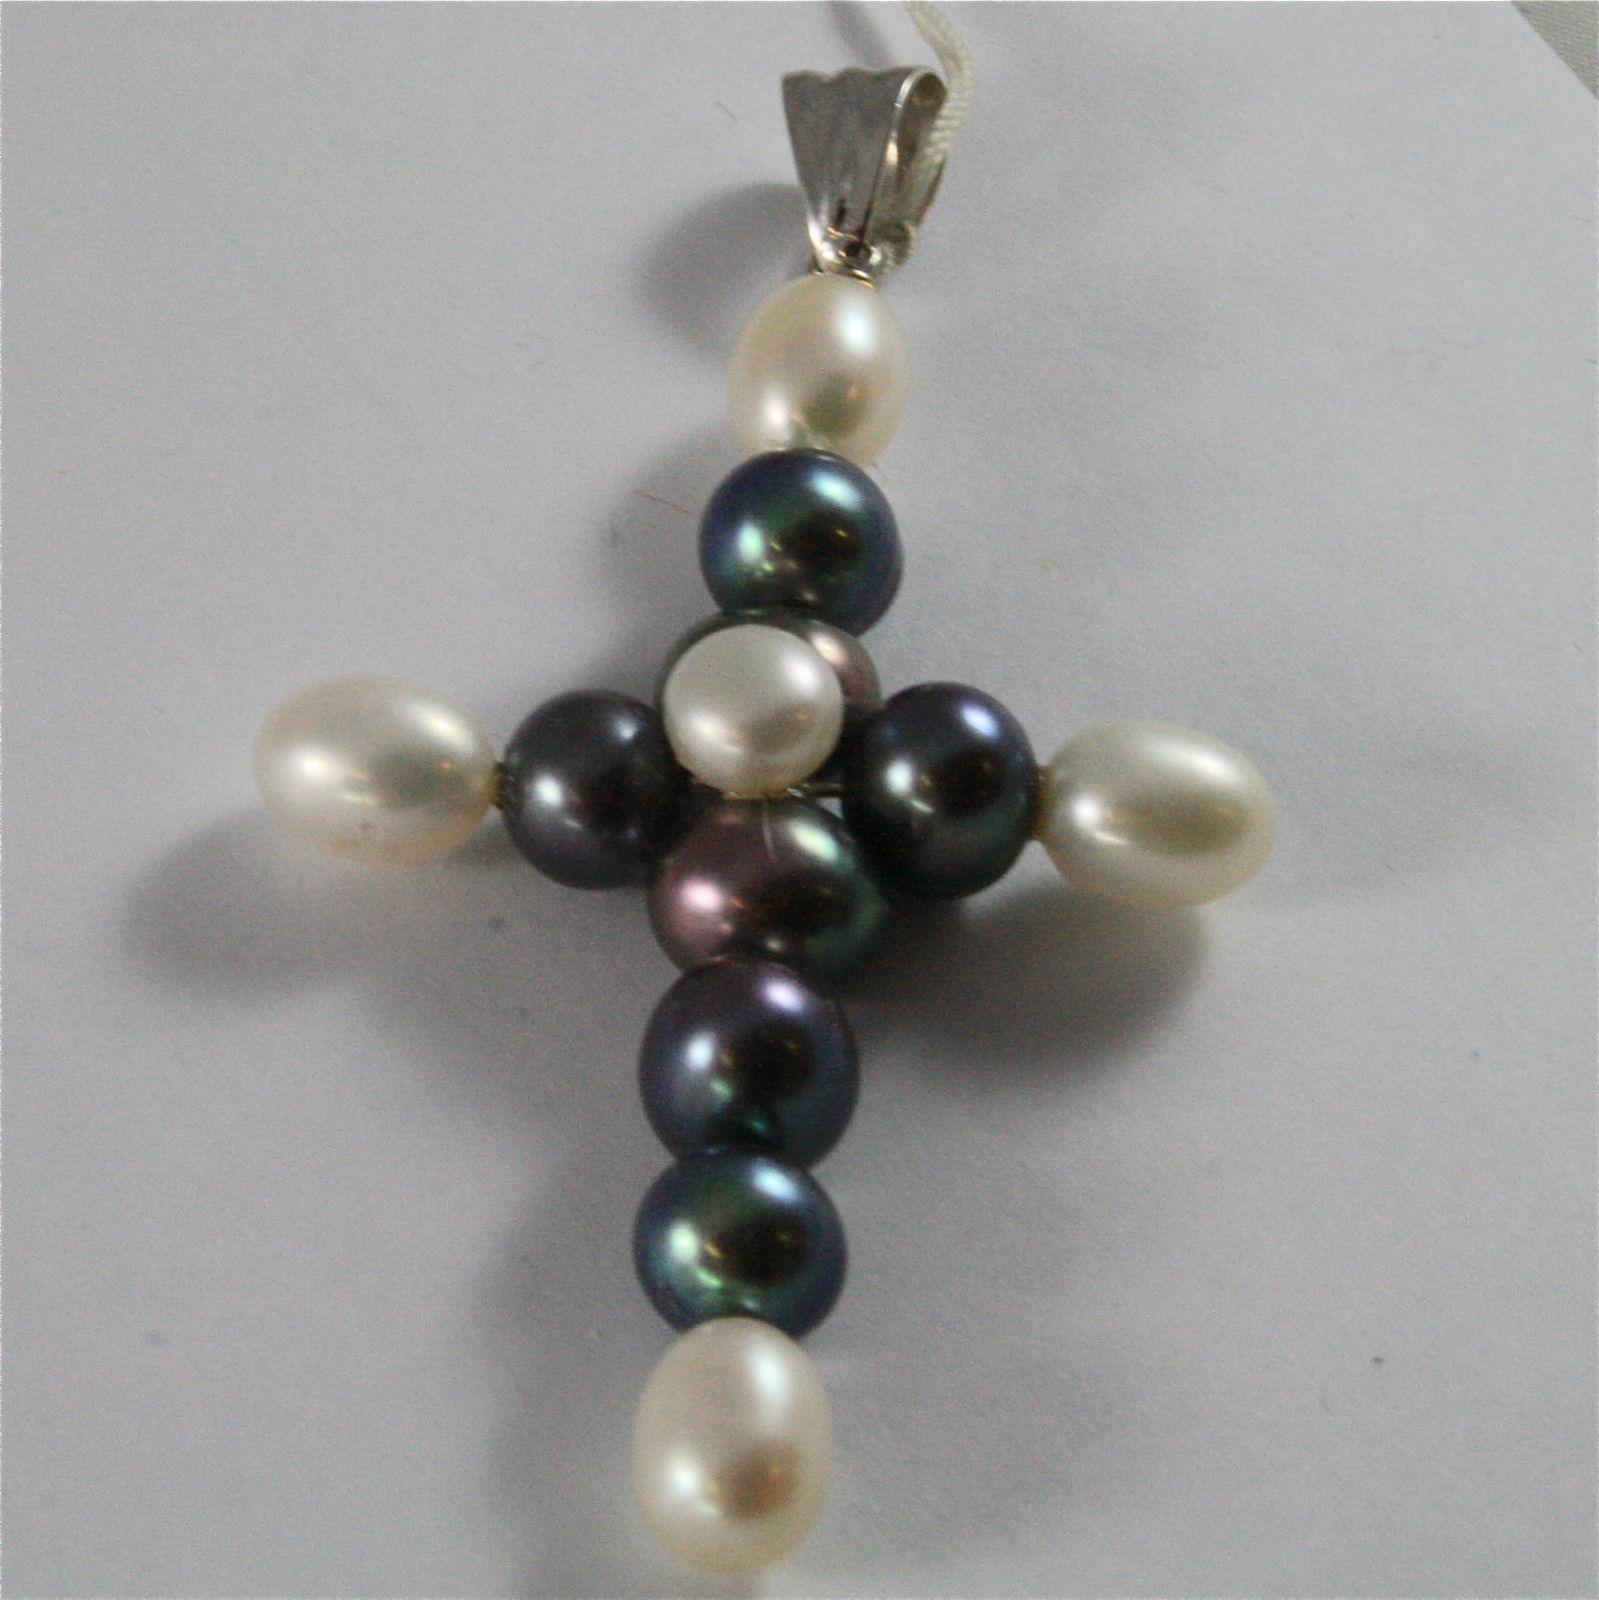 SOLID 18K WHITE GOLD PENDANT, 2,95 X 1,57 In, CROSS, BLACK & WHITE PEARLS.